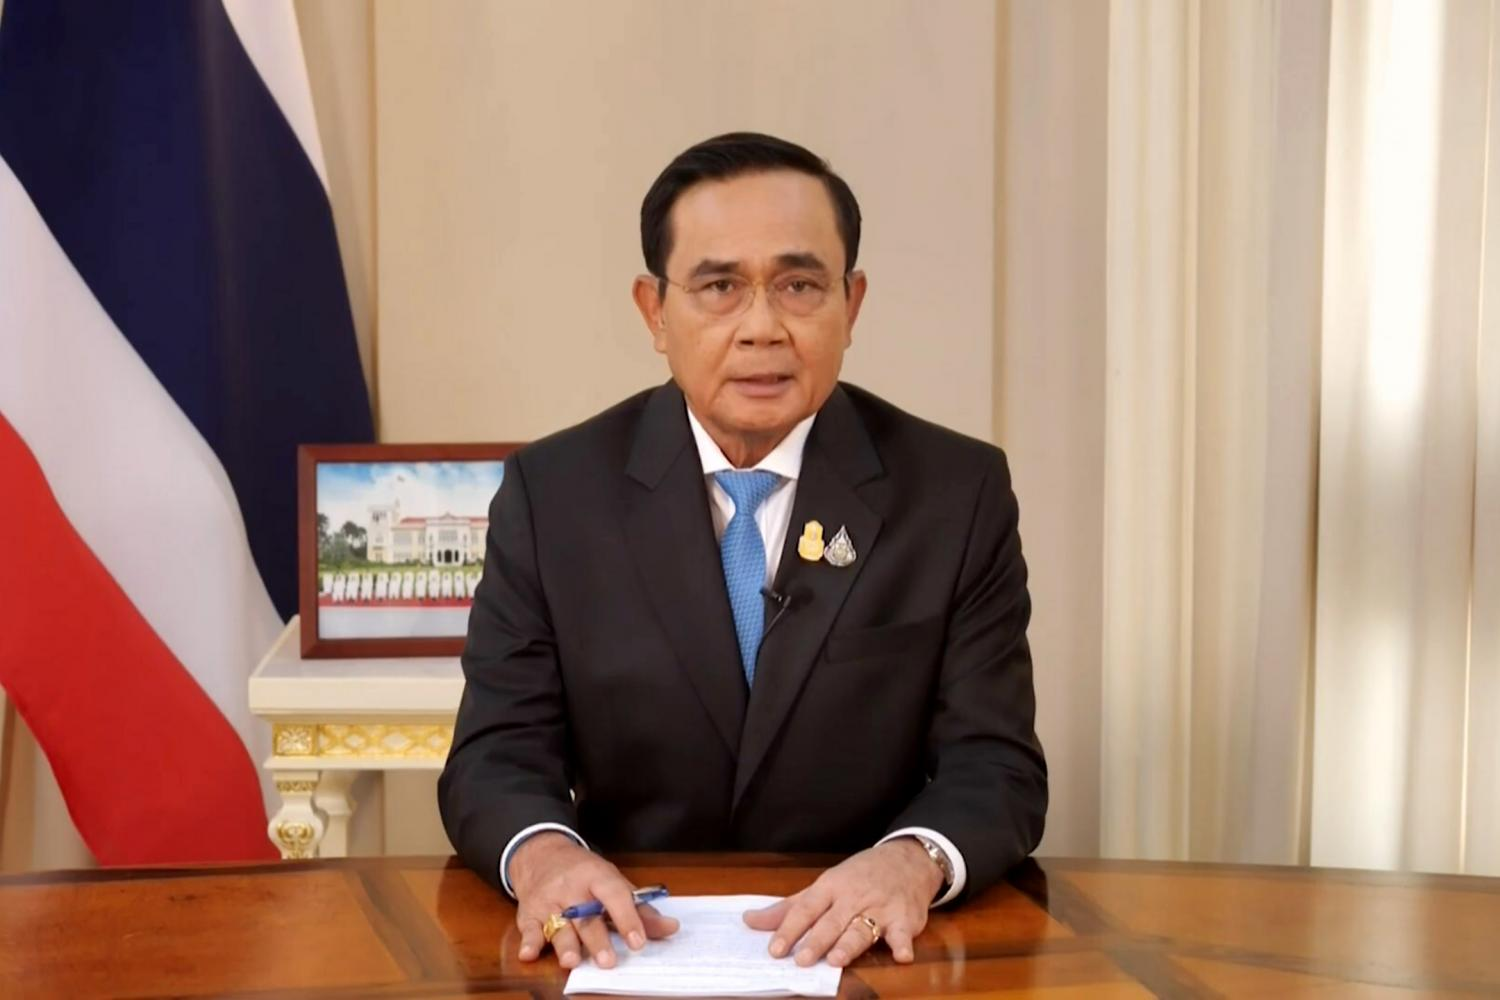 Prime Minister Prayut Chan-o-cha delivers a televised speech urging national unity and outlining various tasks the government will pursue following the latest cabinet reshuffle. The new cabinet held its first meeting on Thursday.(TV Pool photo)